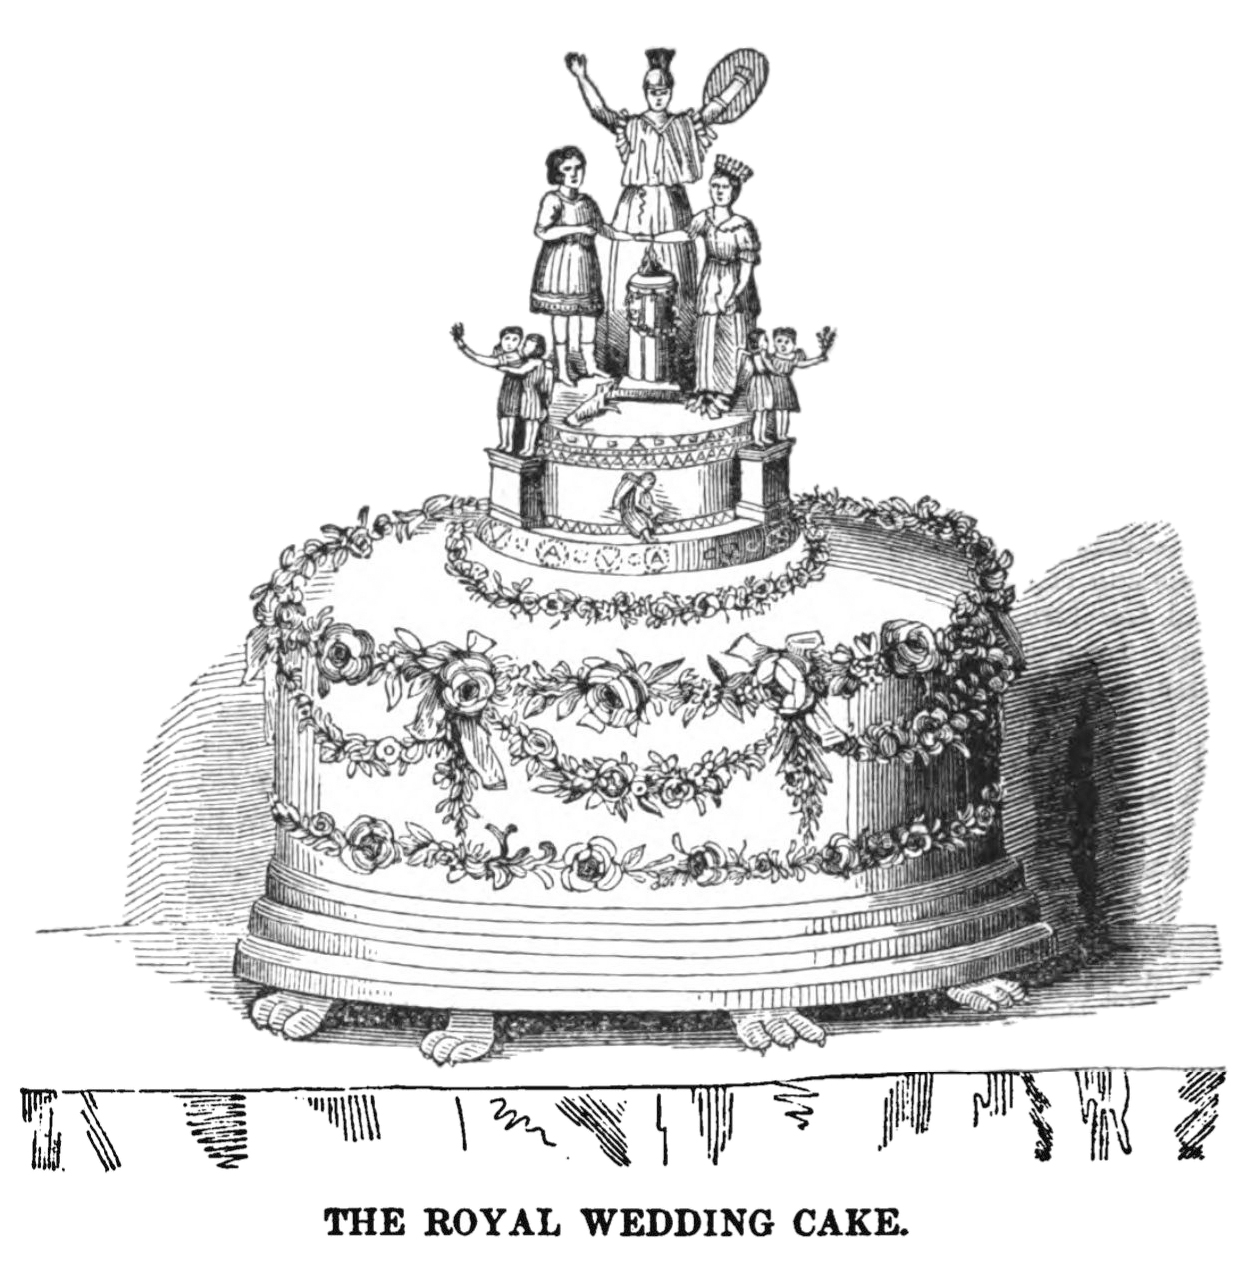 Queen Victoria's royal wedding cake